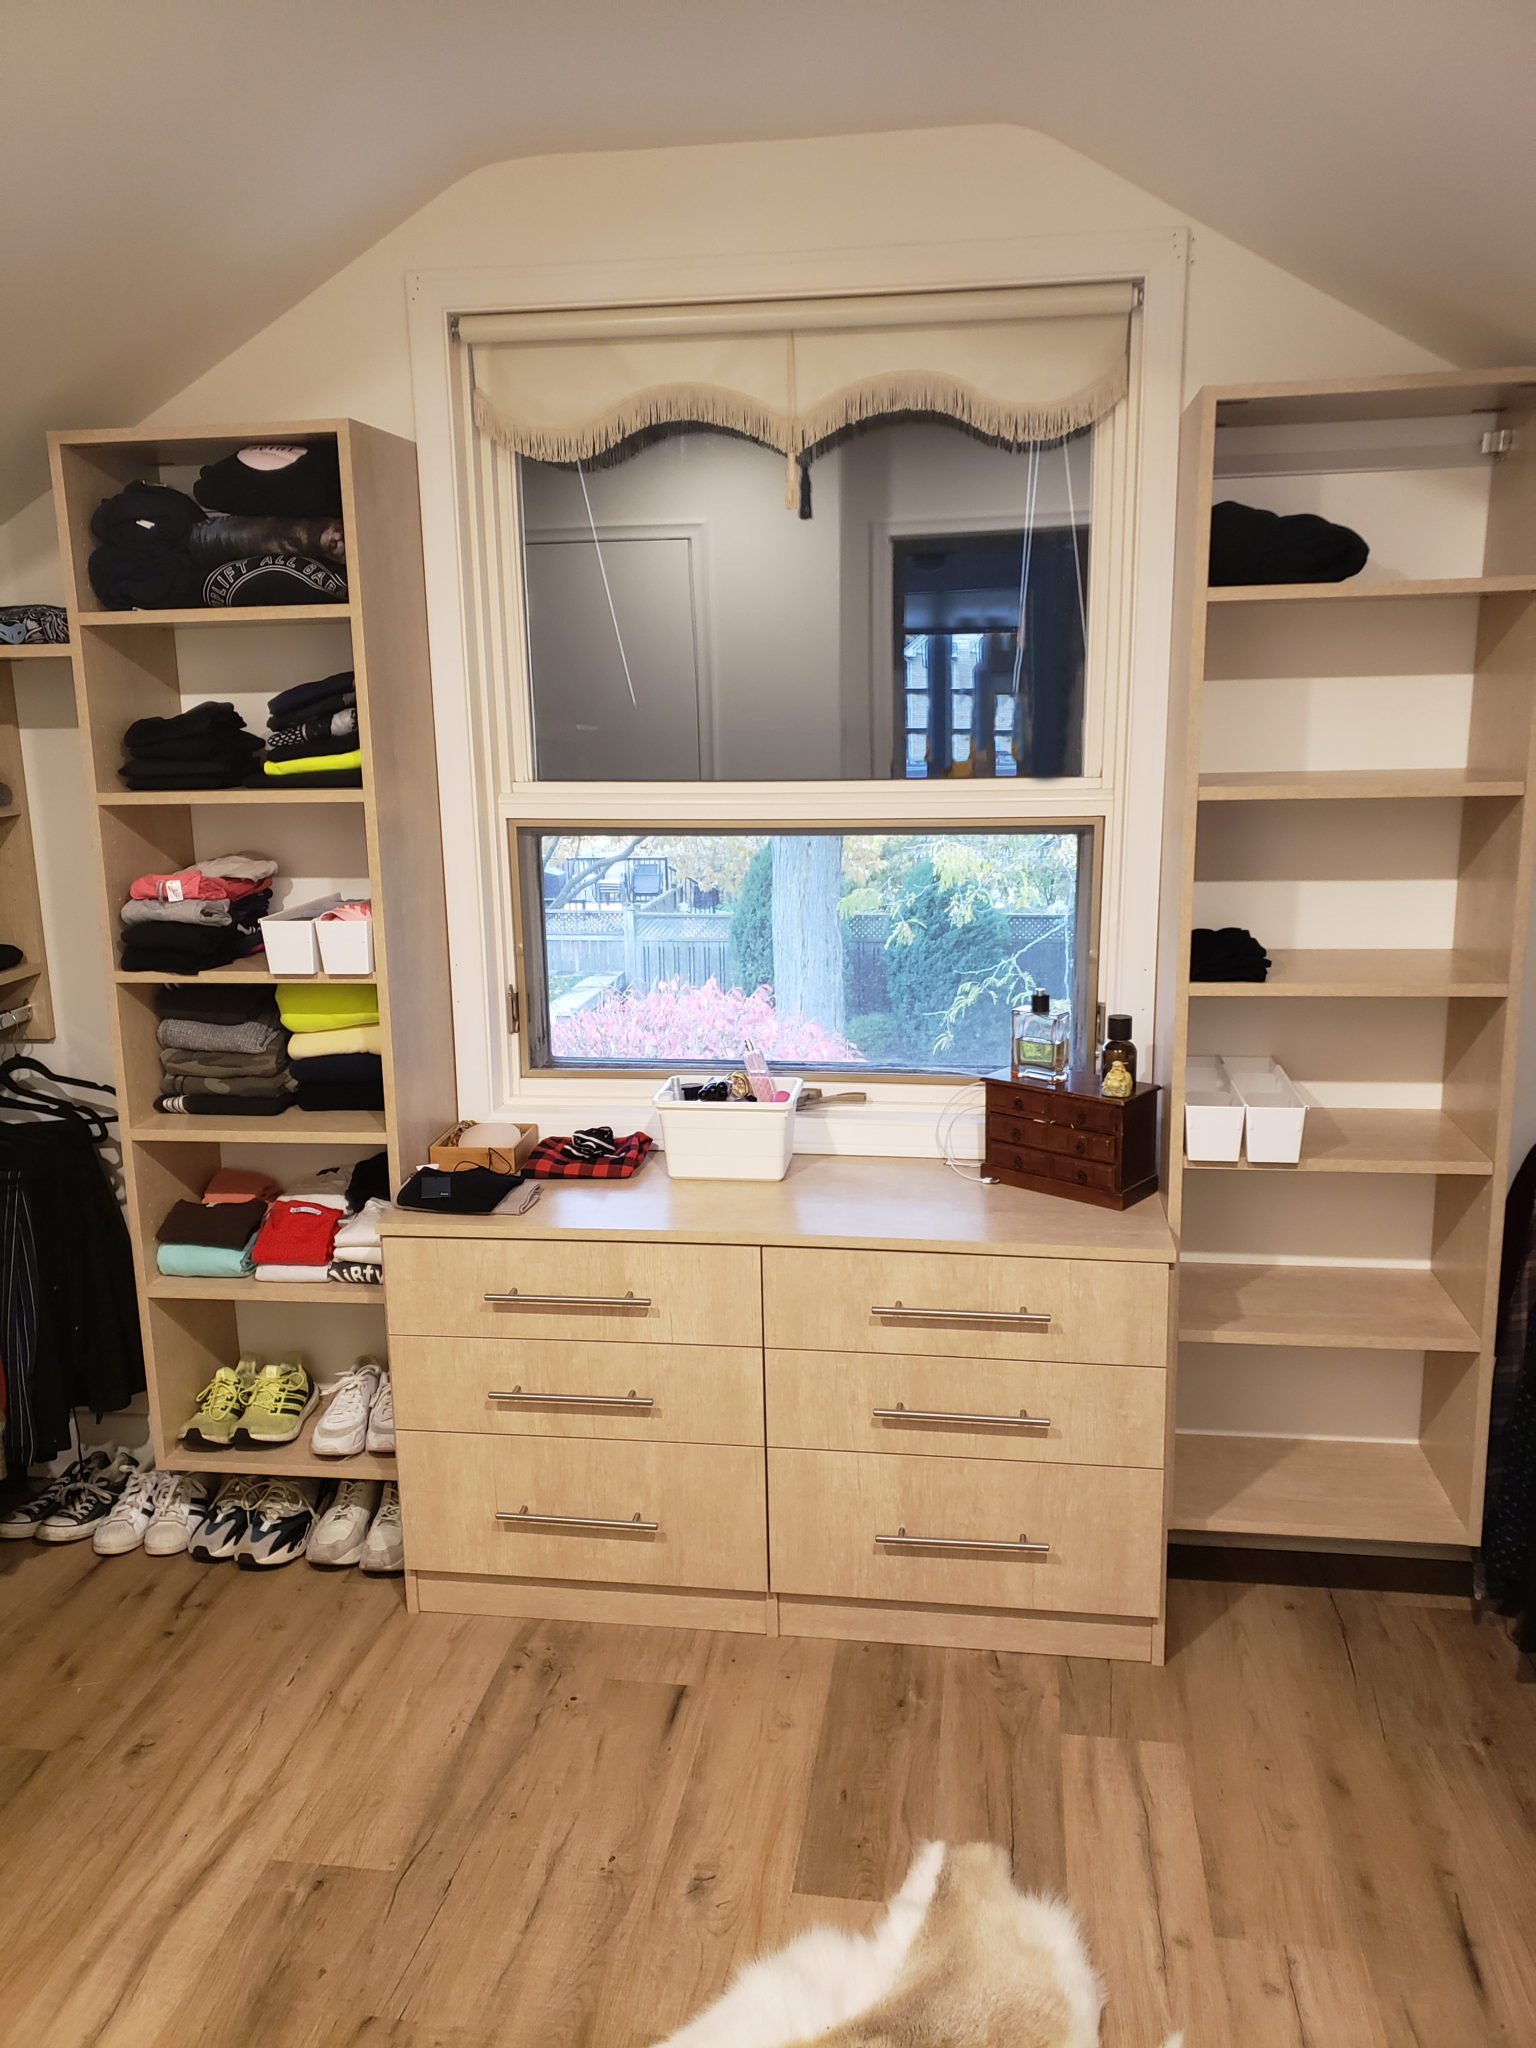 Walk in closet - After